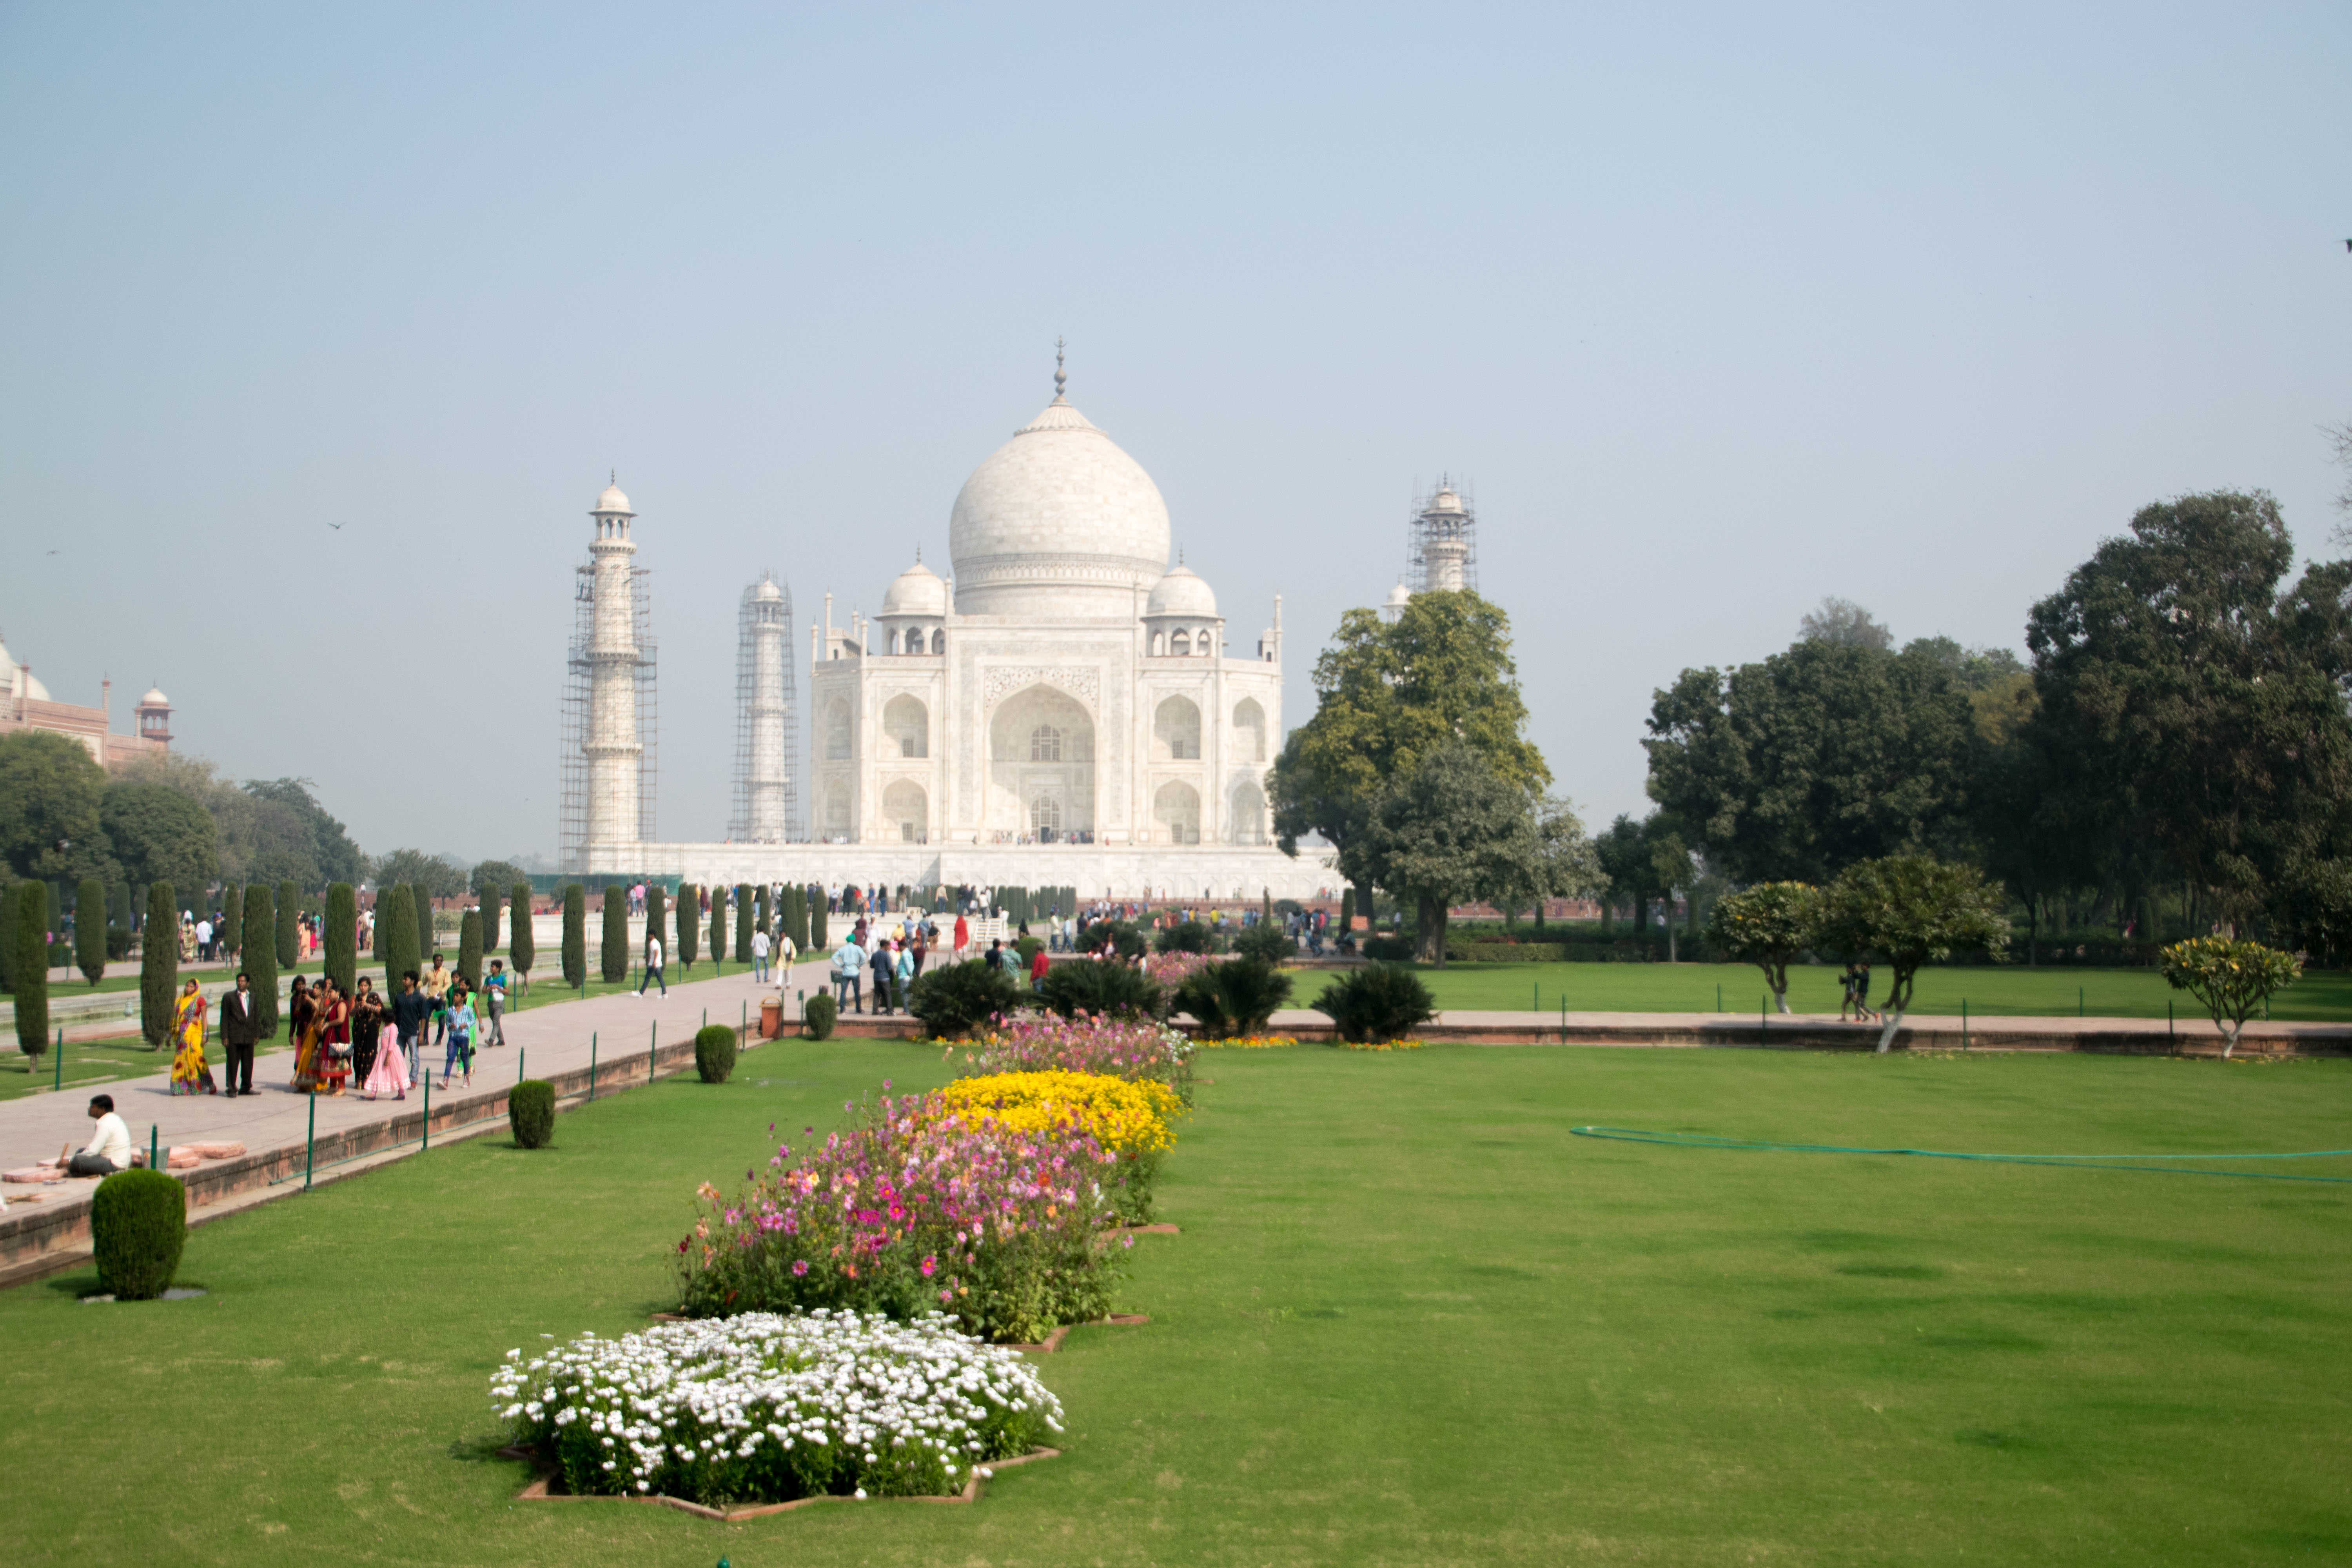 My bout of Delhi Belly struck on the same day that I saw the Taj Mahal. It really was a day of extreme highs and lows.